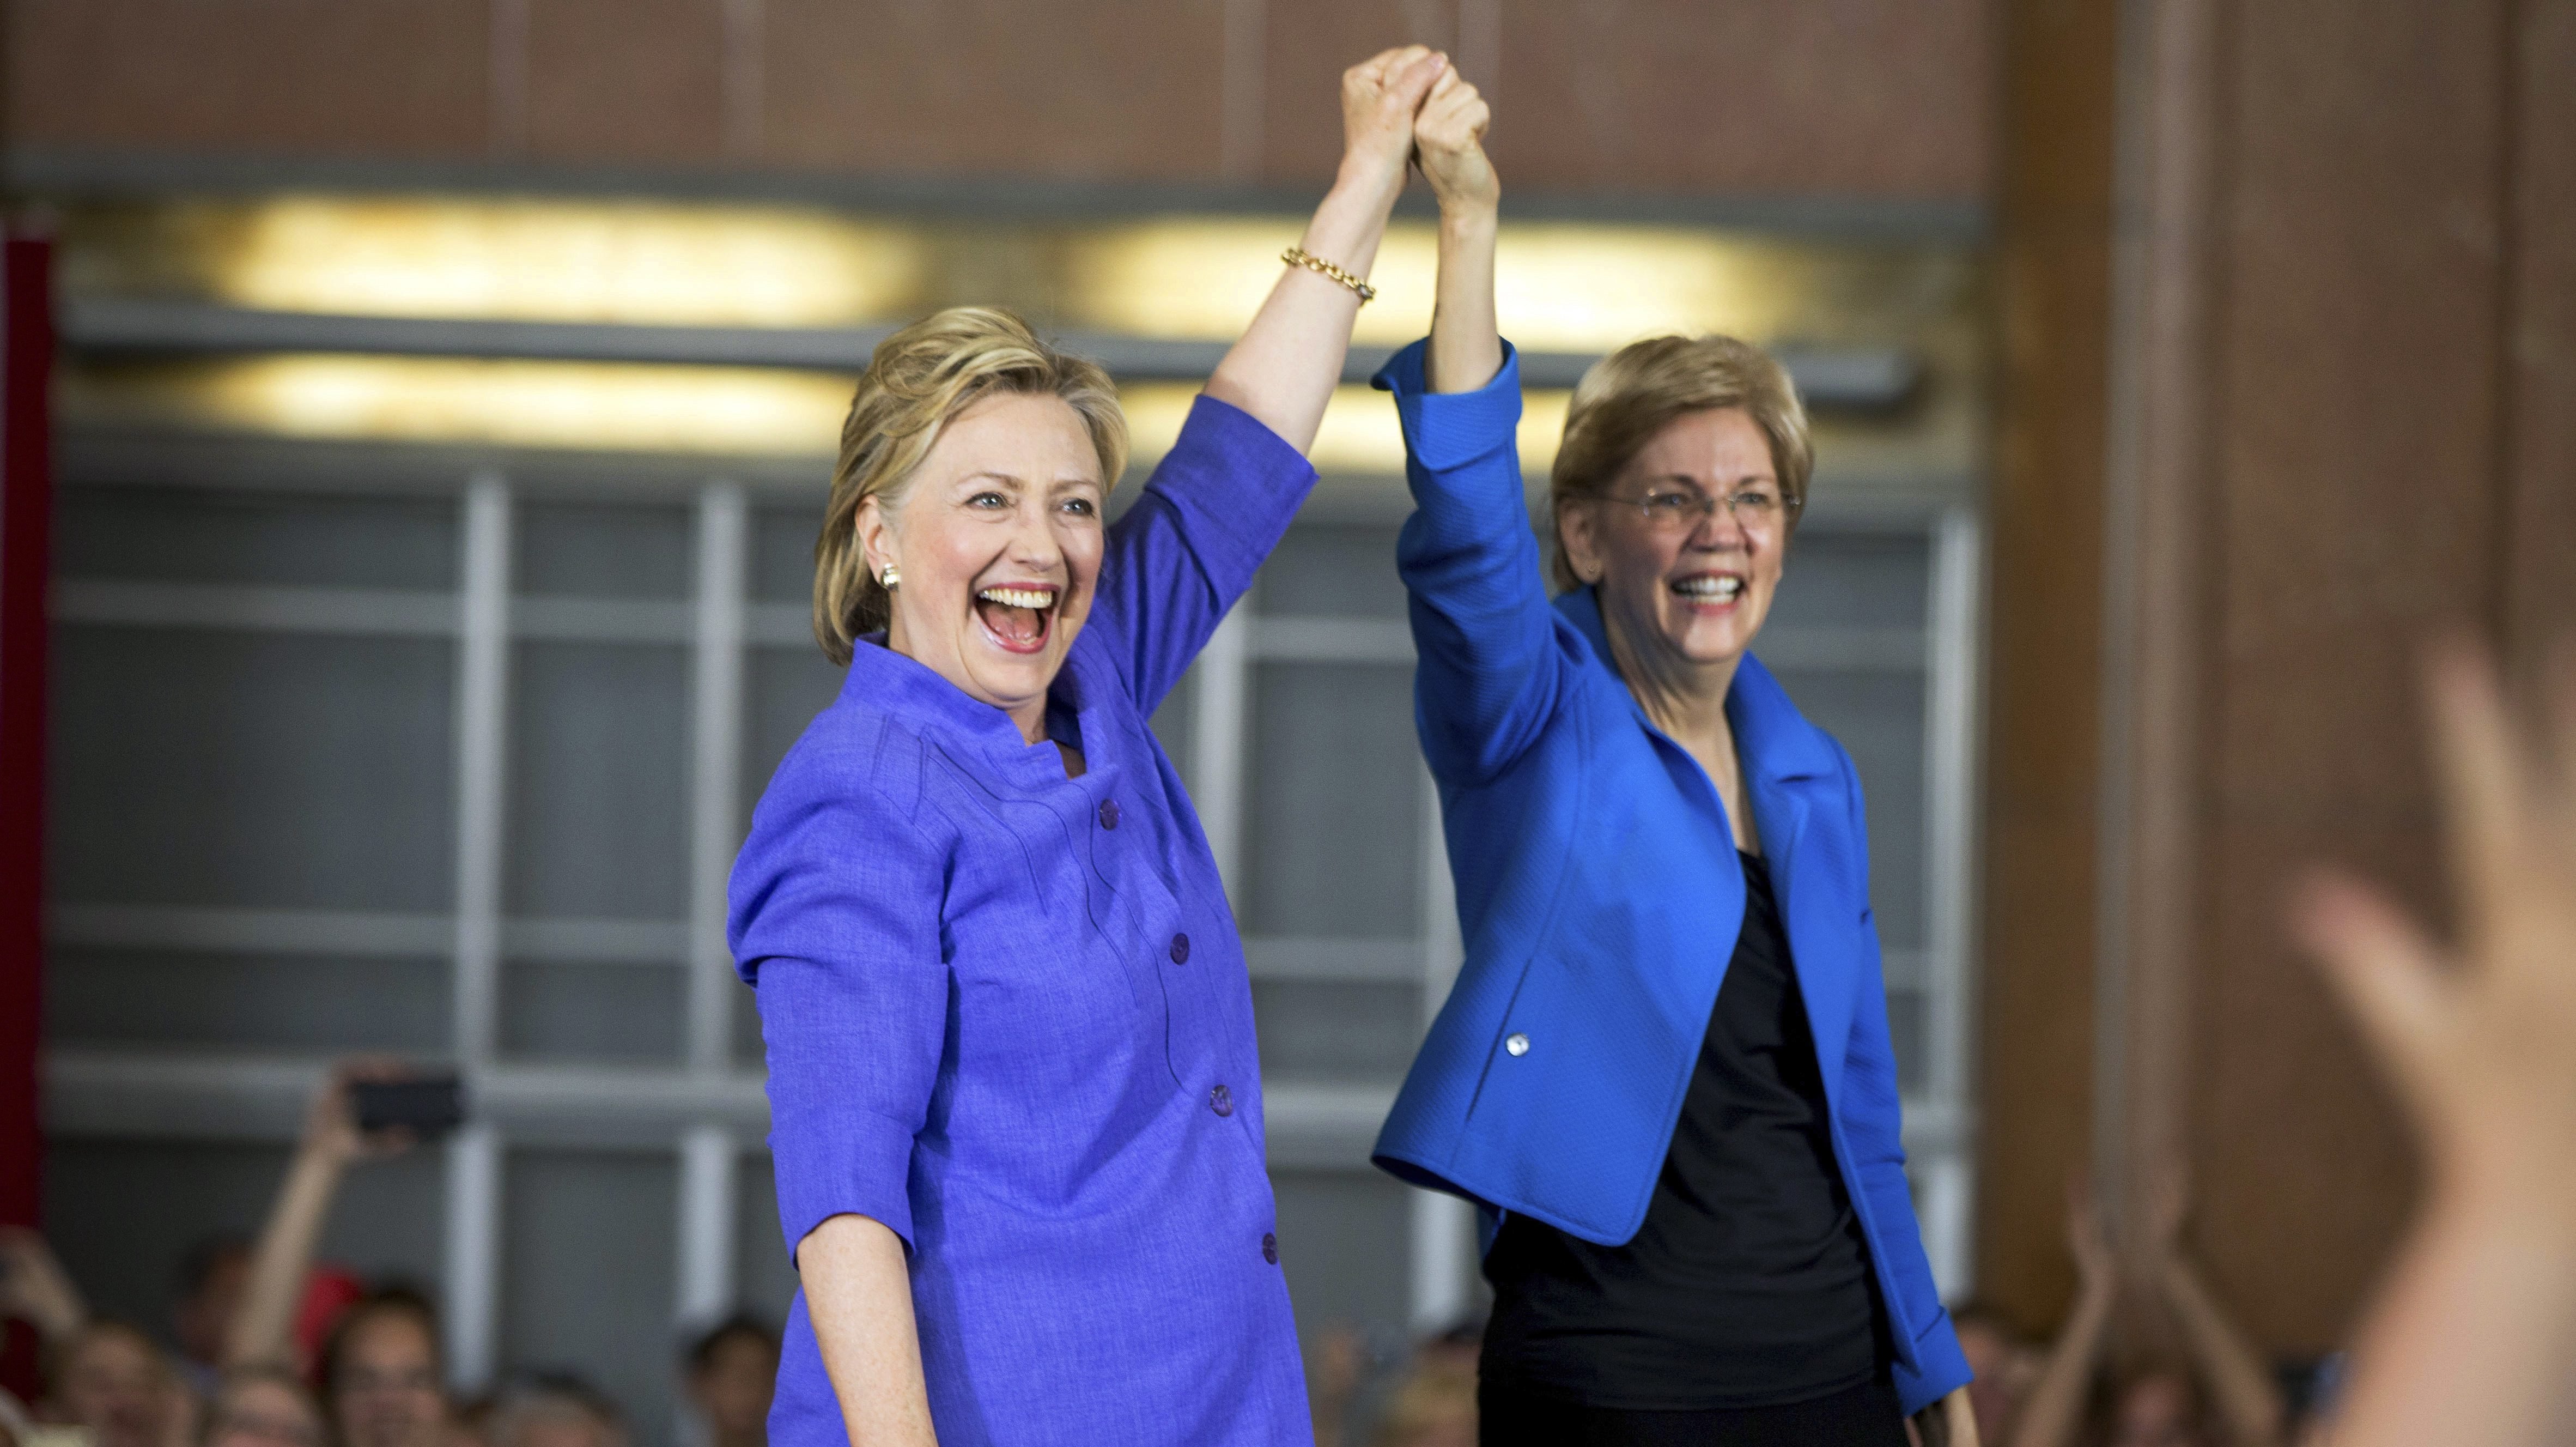 FILE - In this June 27, 2016, file photo, Democratic presidential candidate Hillary Clinton, accompanied by Sen. Elizabeth Warren, D-Mass., arrives to speak at the Cincinnati Museum Center at Union Terminal in Cincinnati. Warren is being considered as a vice presidential pick for Clinton. (AP Photo/Andrew Harnik, File)